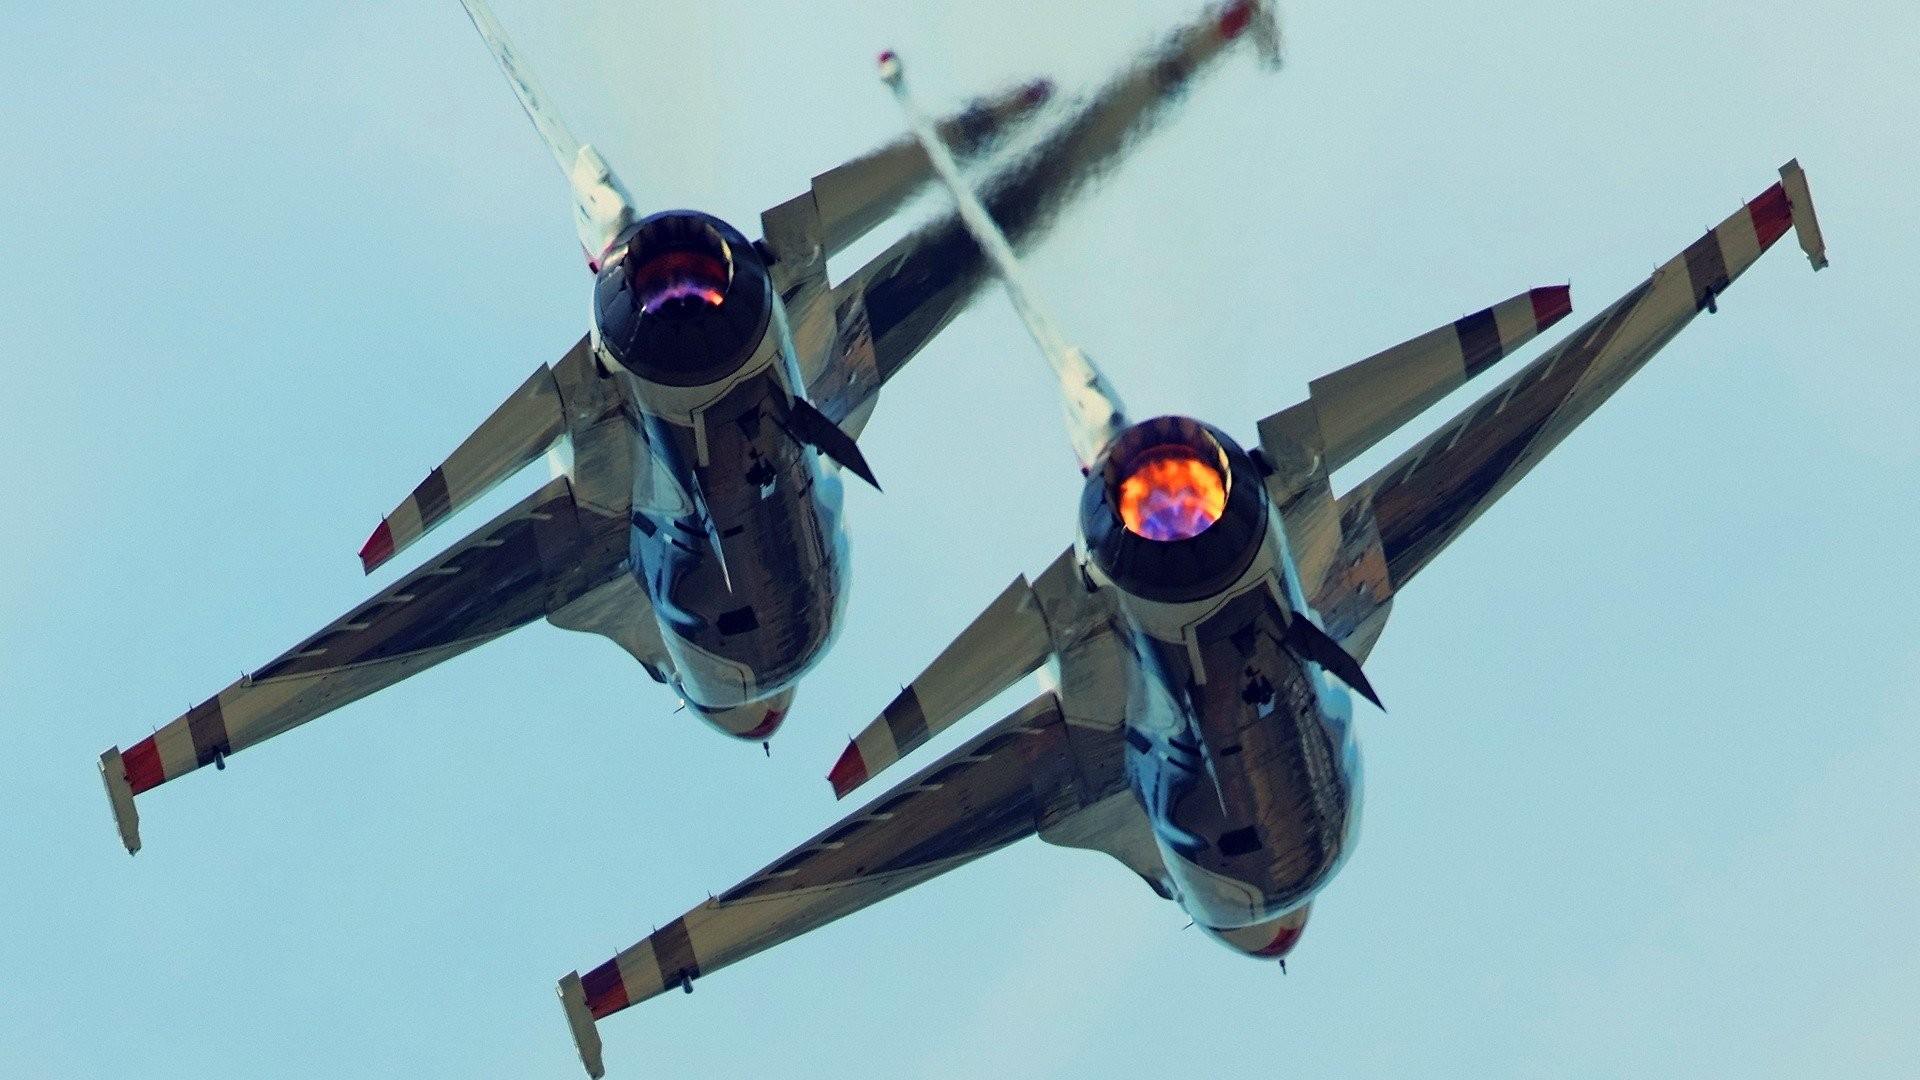 Afterburner Aircraft F-16 Fighting Falcon Fighter Jets Thunderbirds Squadron